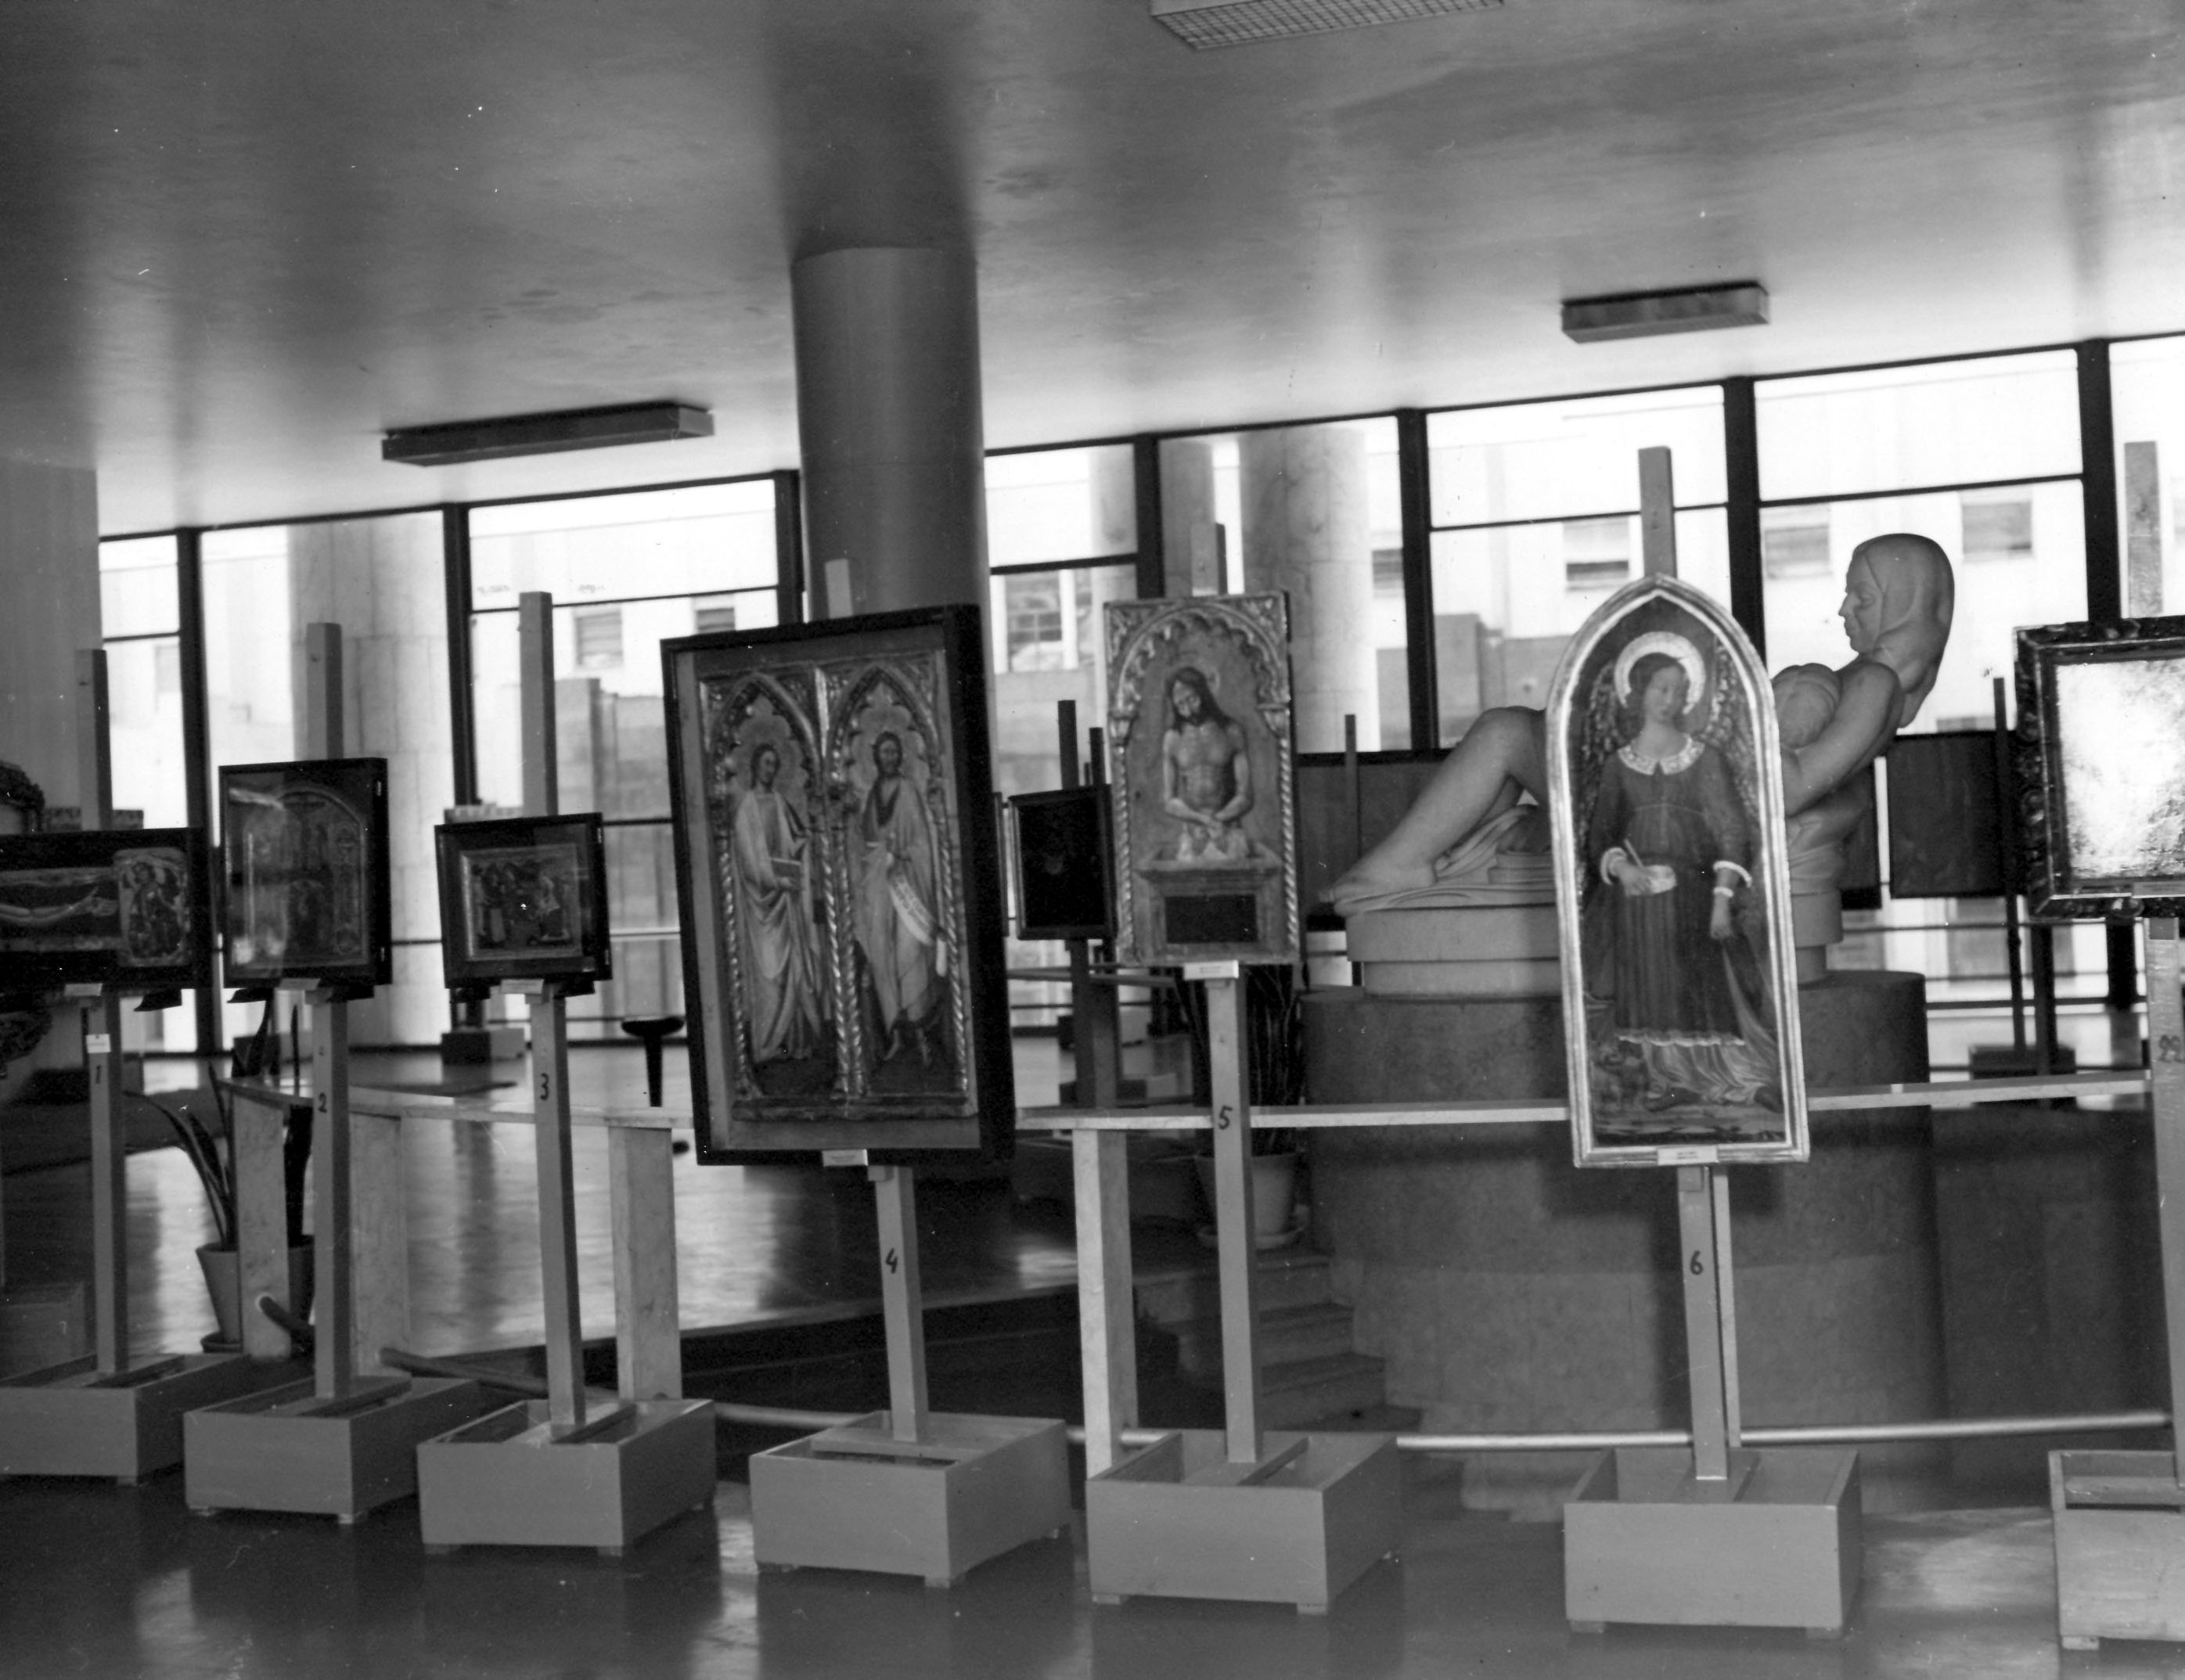 Exhibition of Italian painting, Ministry of Education and Public Health (MES) building, Rio de Janeiro, 1946.